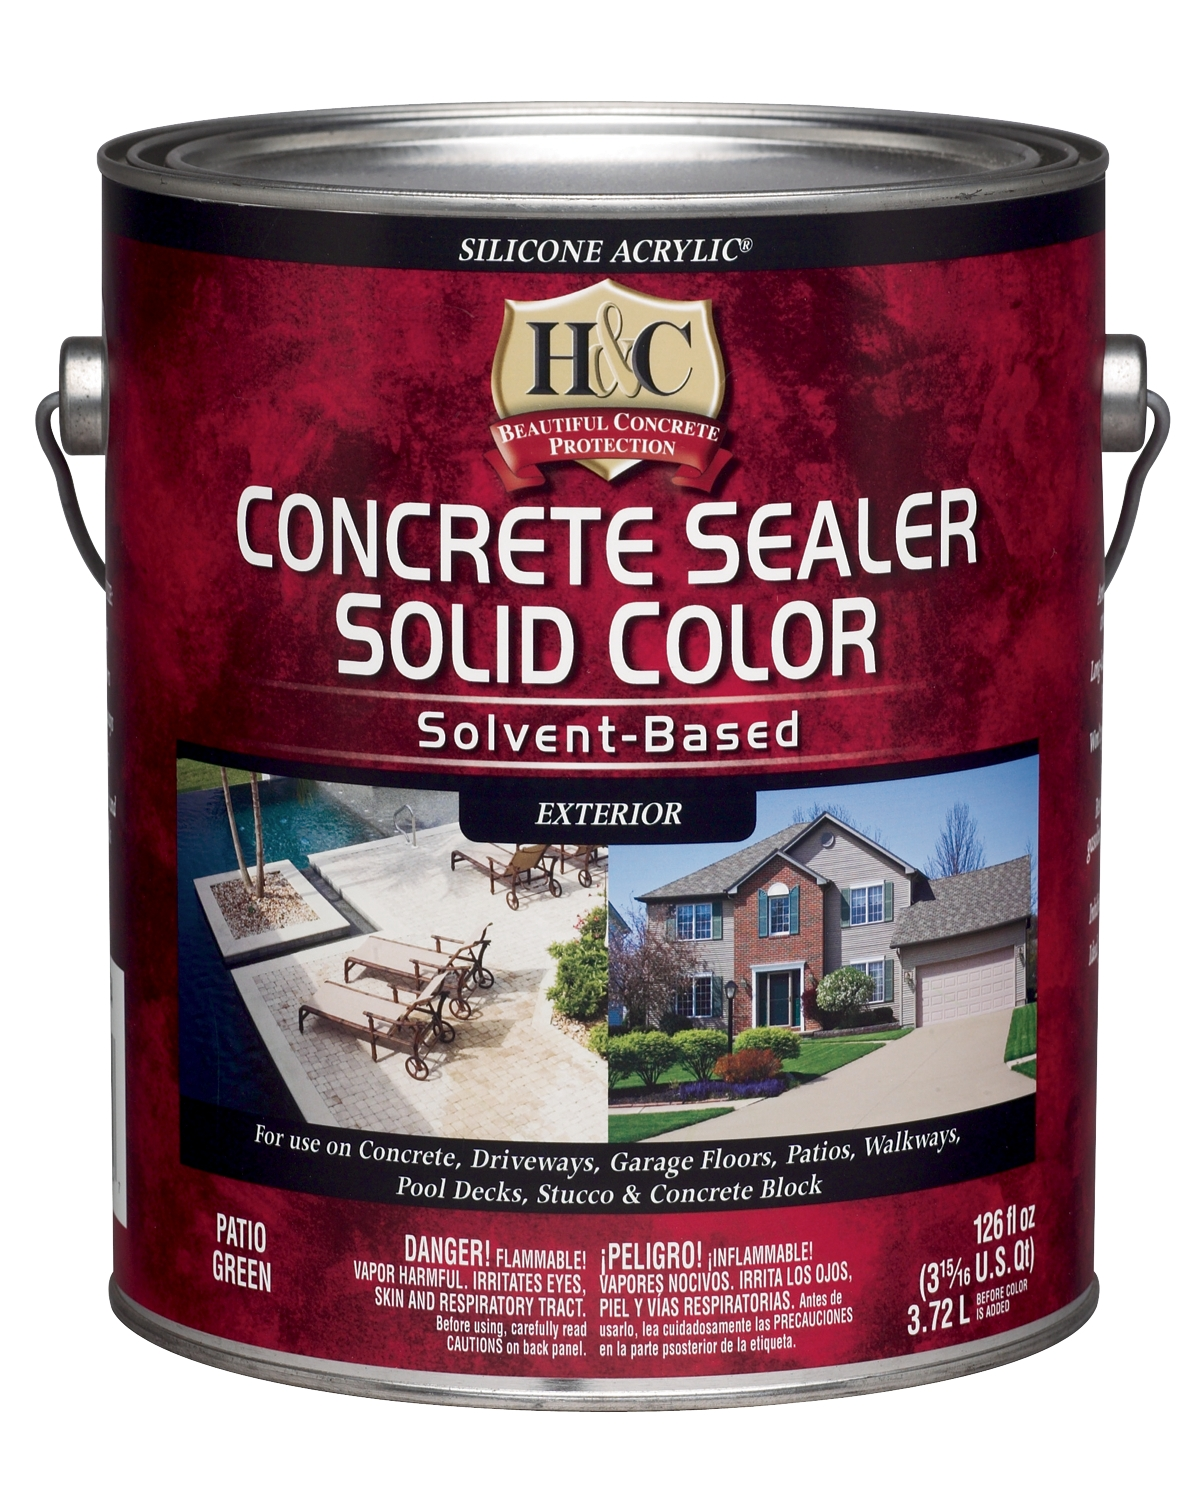 H&C® Concrete Sealer Solid Color Solvent-Based